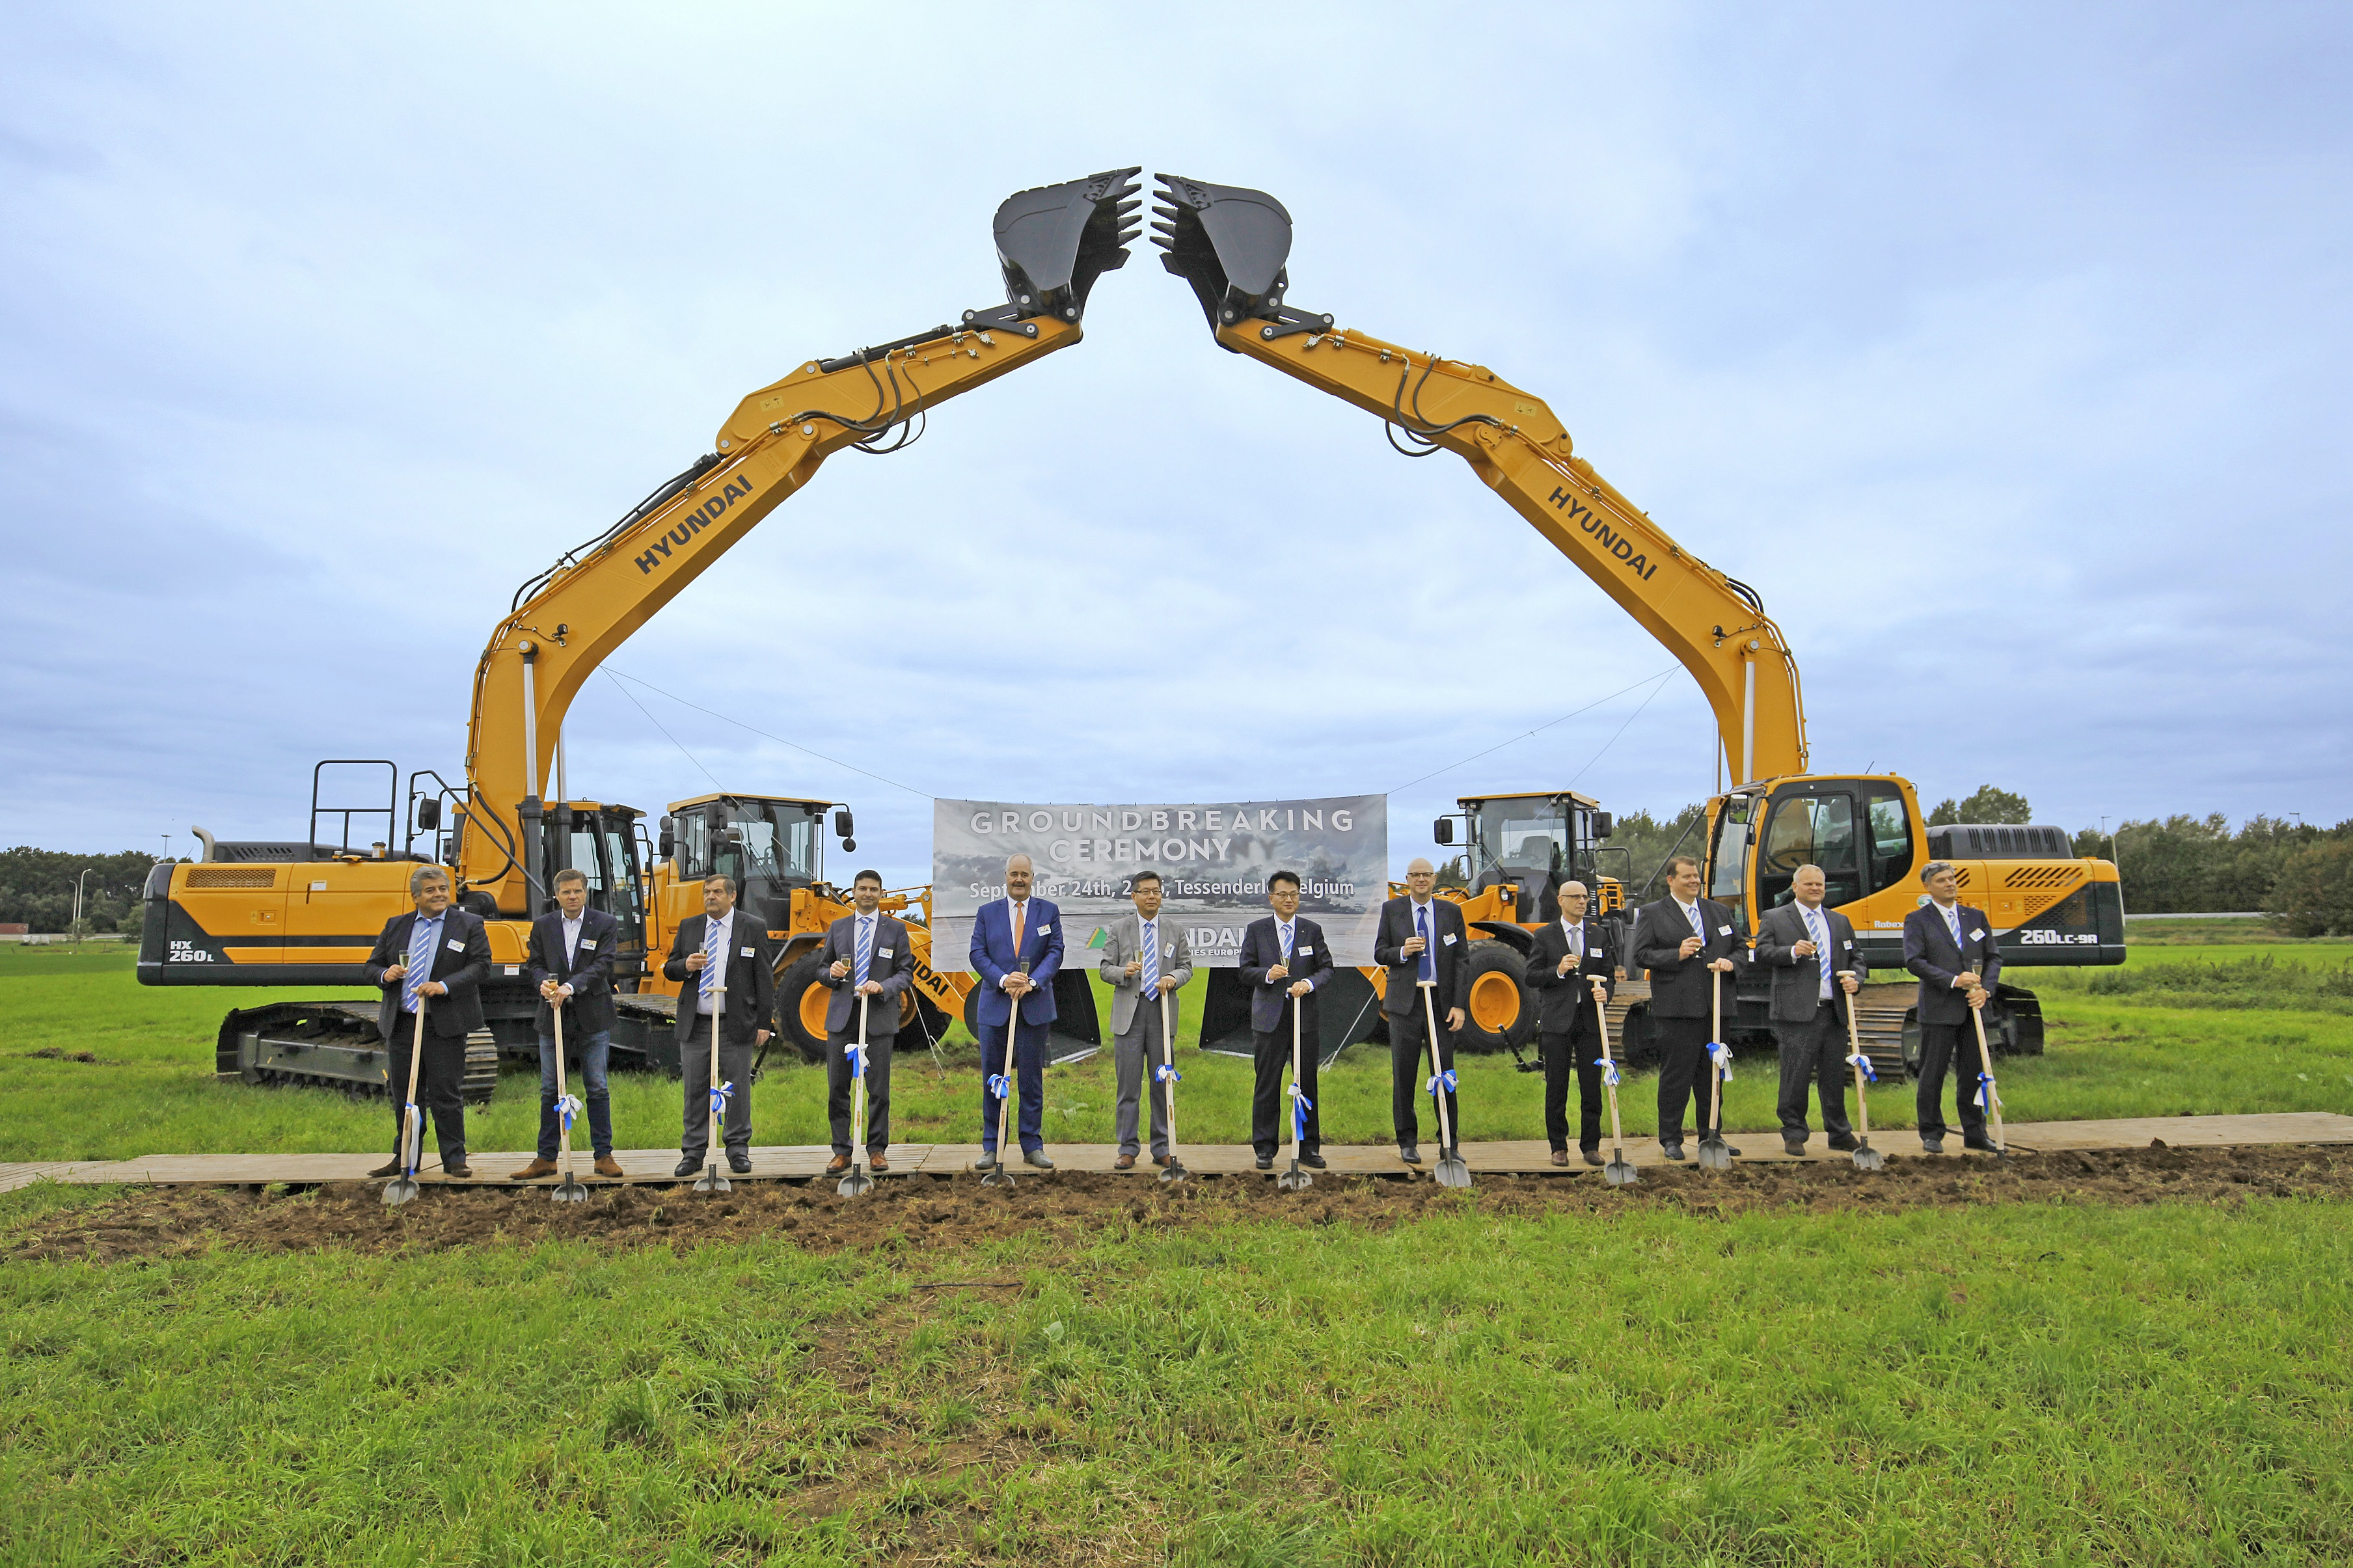 Hyundai Heavy Industries Europe Holds Groundbreaking